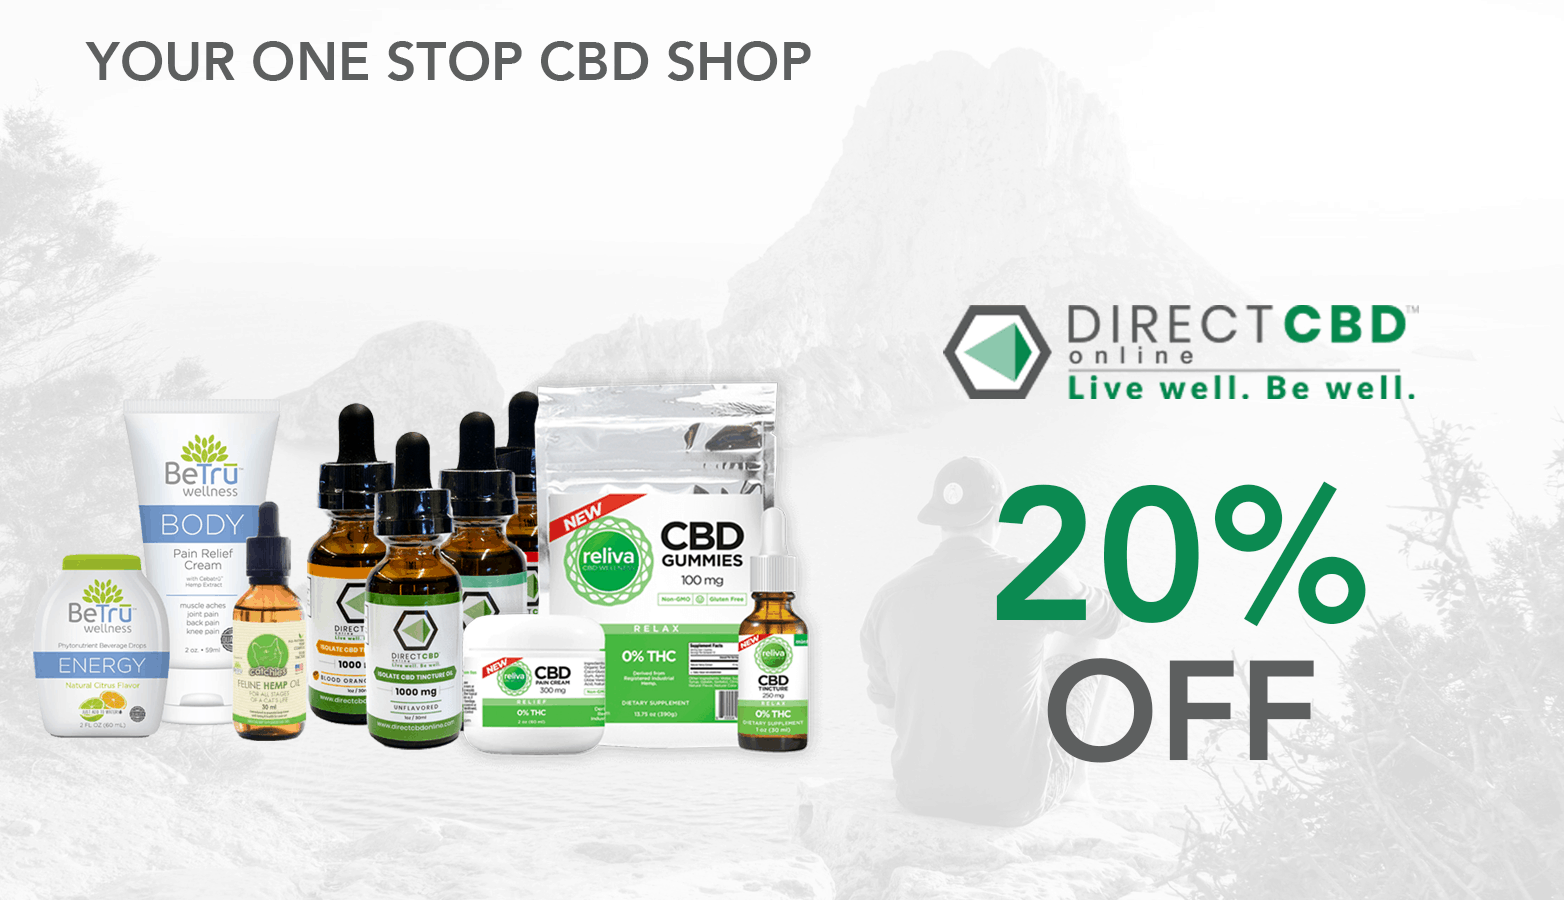 Direct CBD product line coupon code